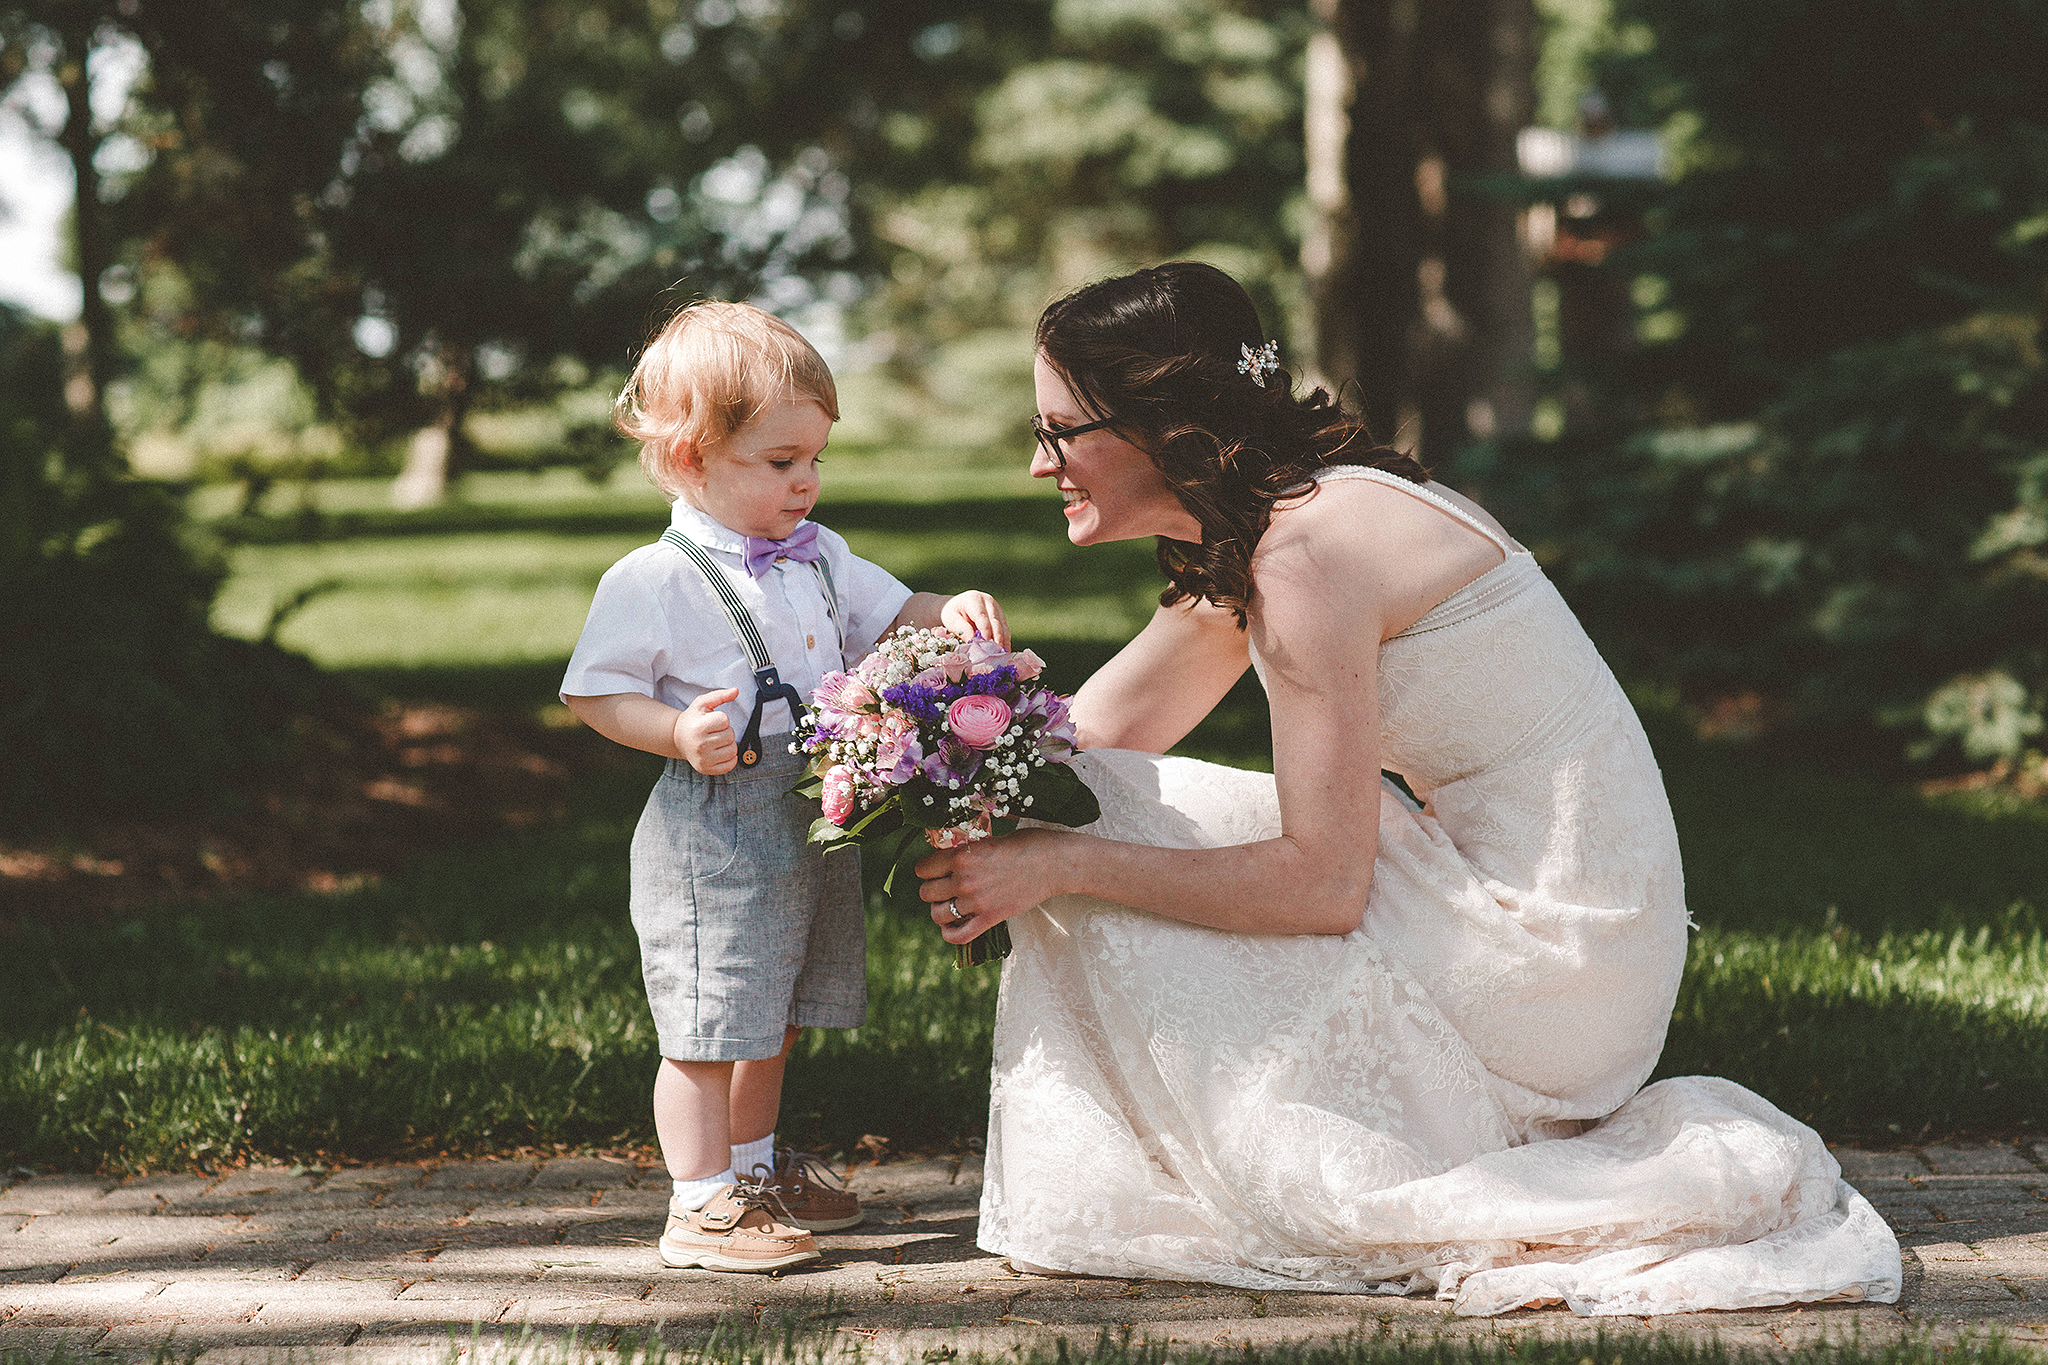 Outdoor elopement ring bearer photos at Chapel in the Pines | Sycamore IL Wedding Photographer | Chrissy Deming Photography